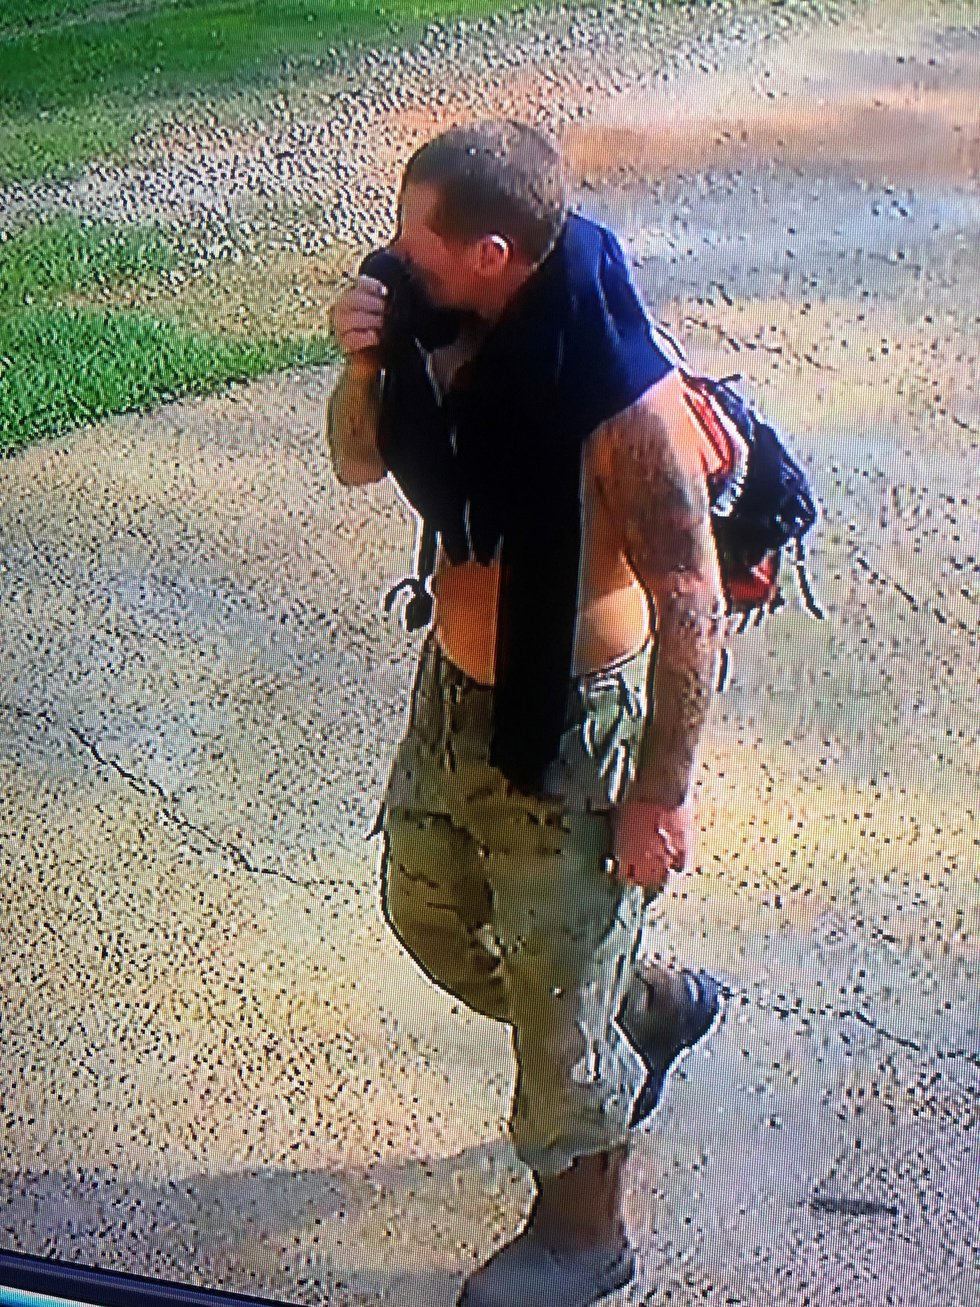 Opelika police searching for property theft suspect